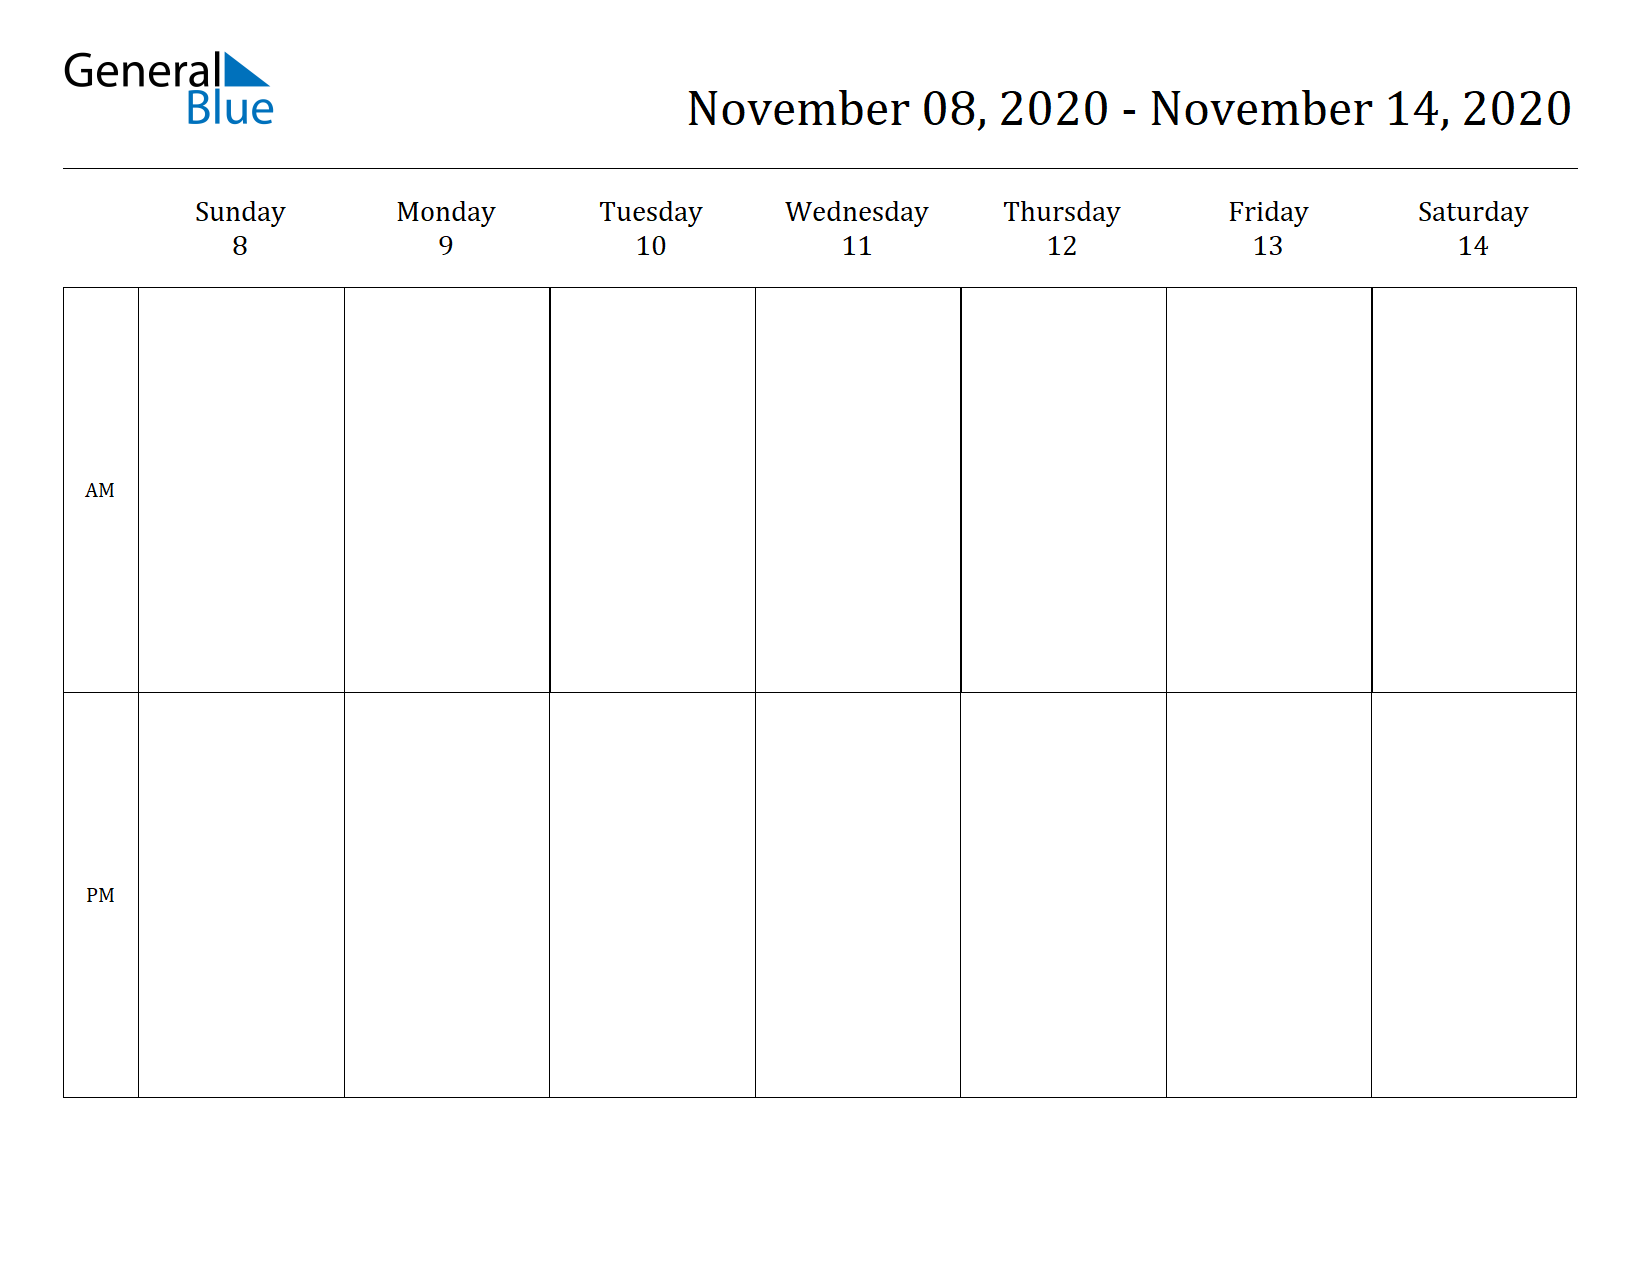 Weekly Calendar for Nov 08, 2020 to Nov 14, 2020